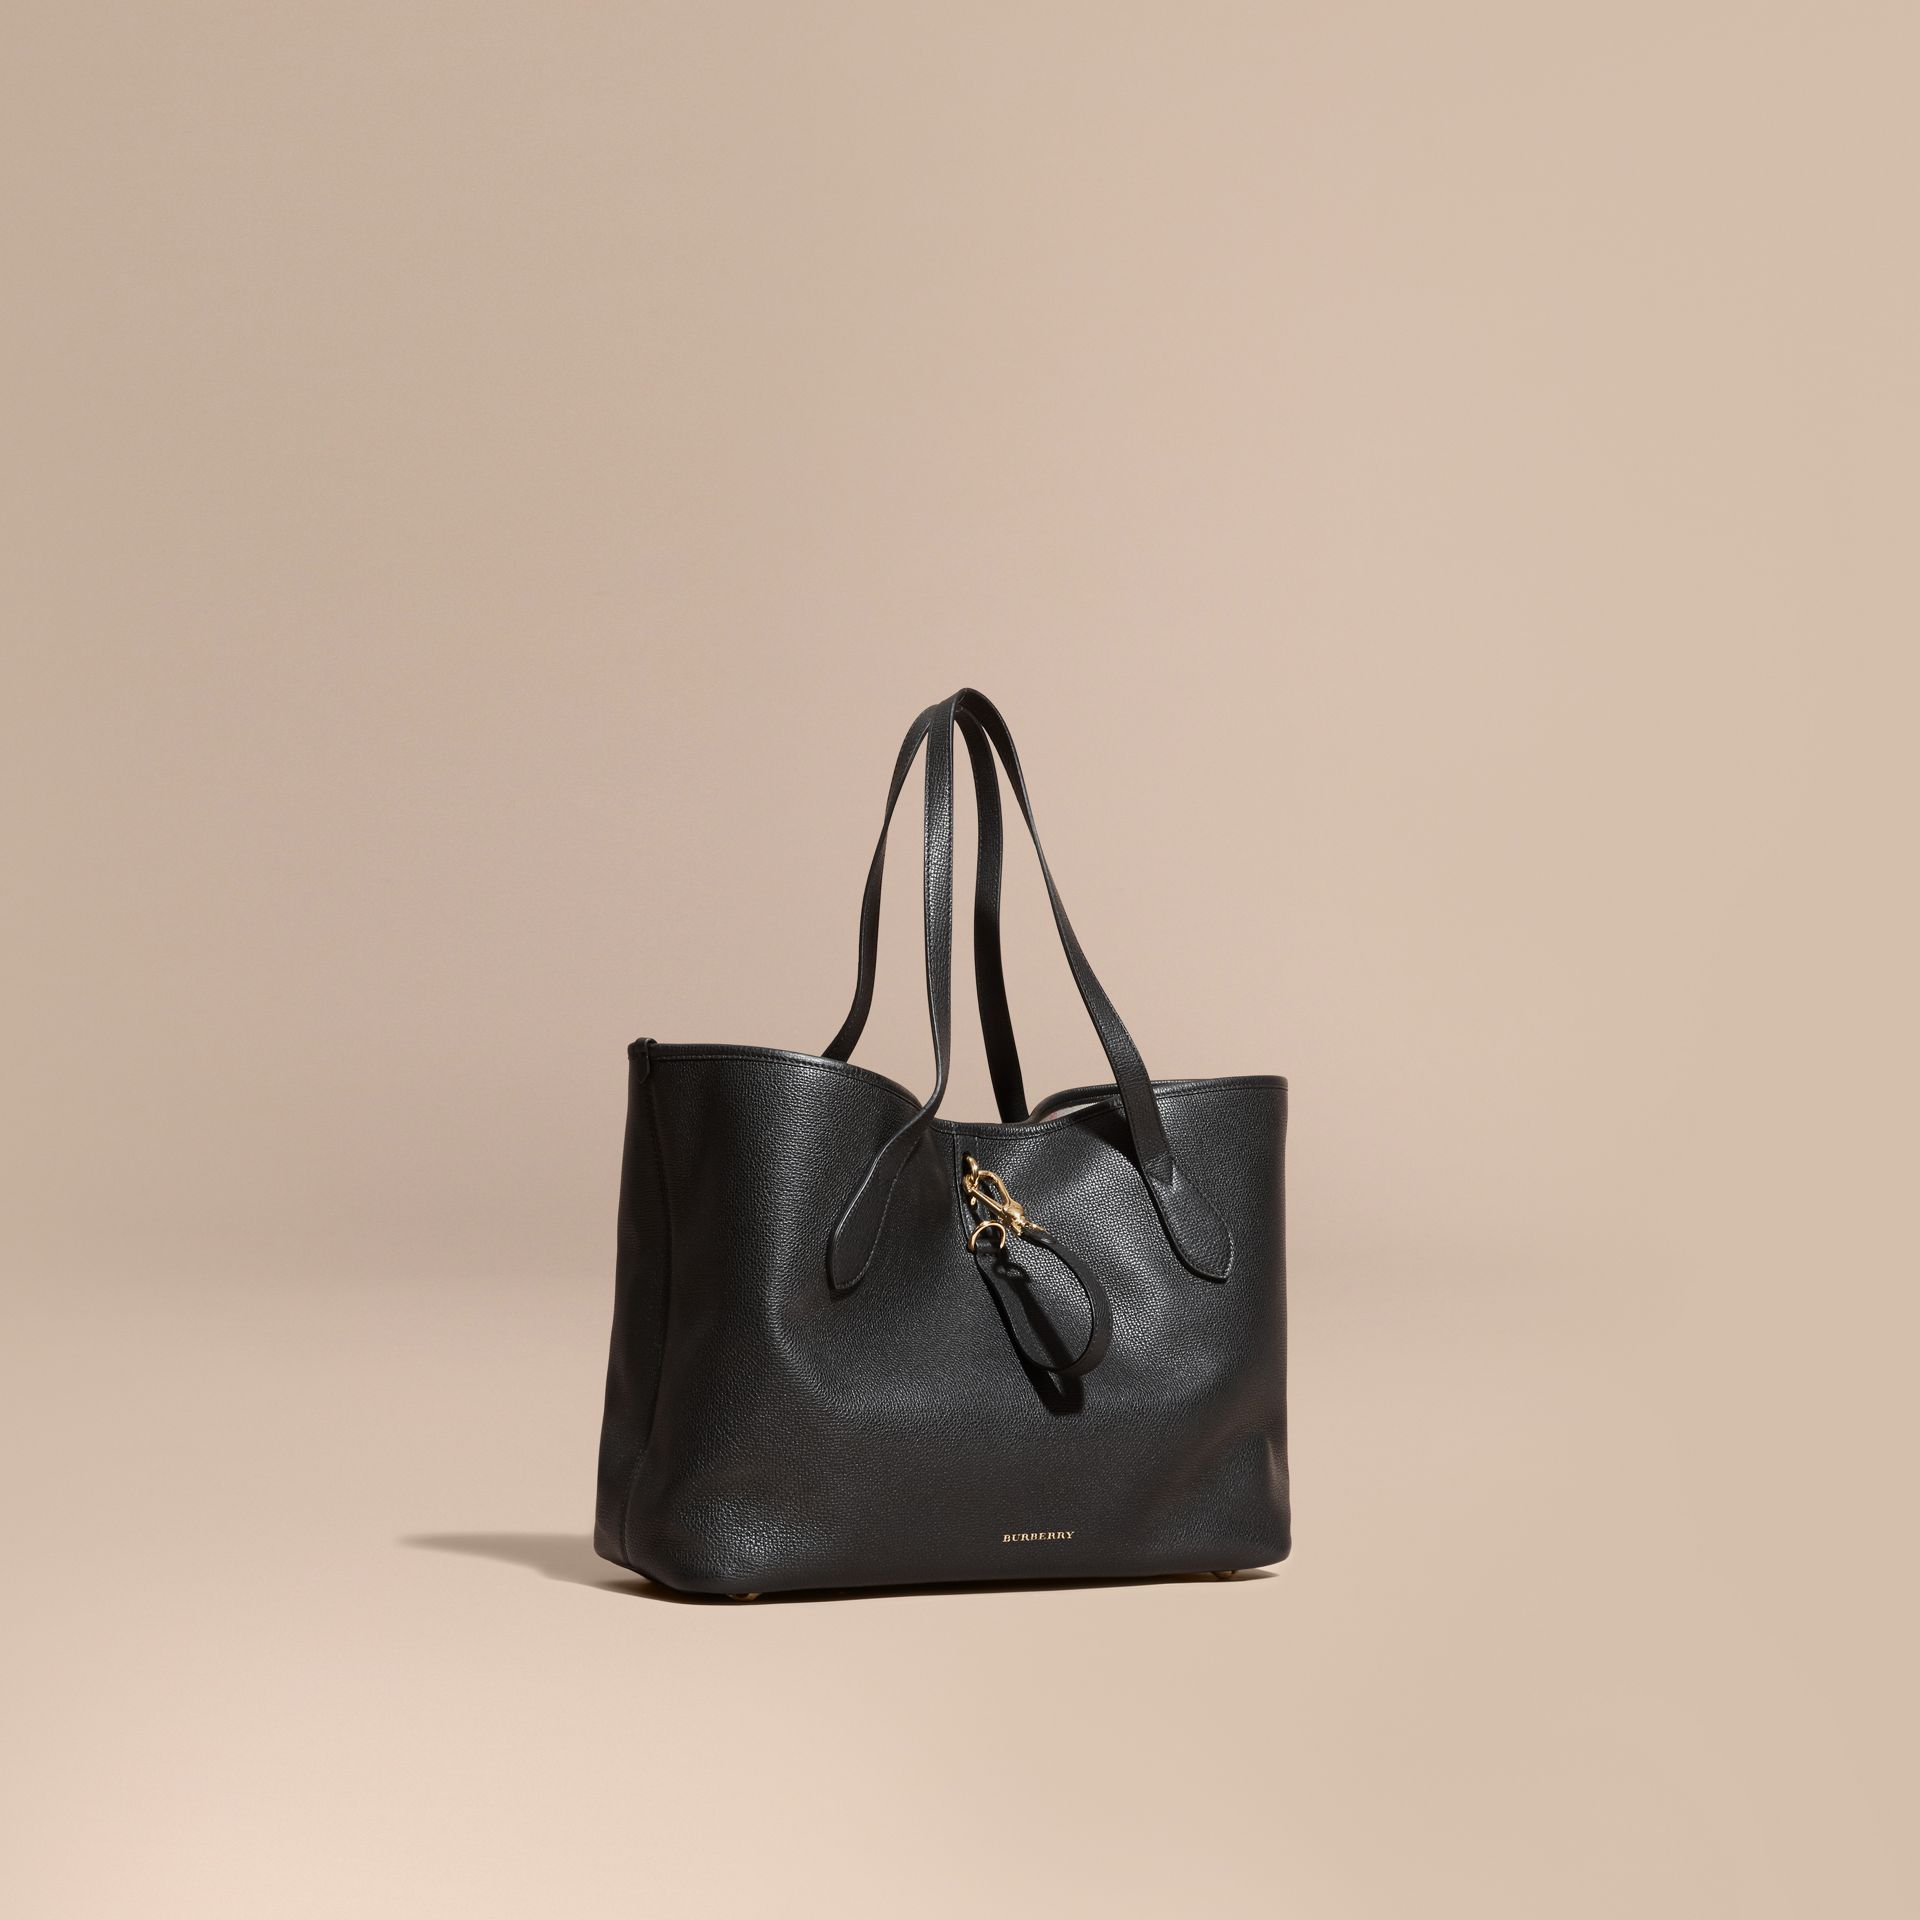 Black Medium Grainy Leather Tote Bag Black - gallery image 1